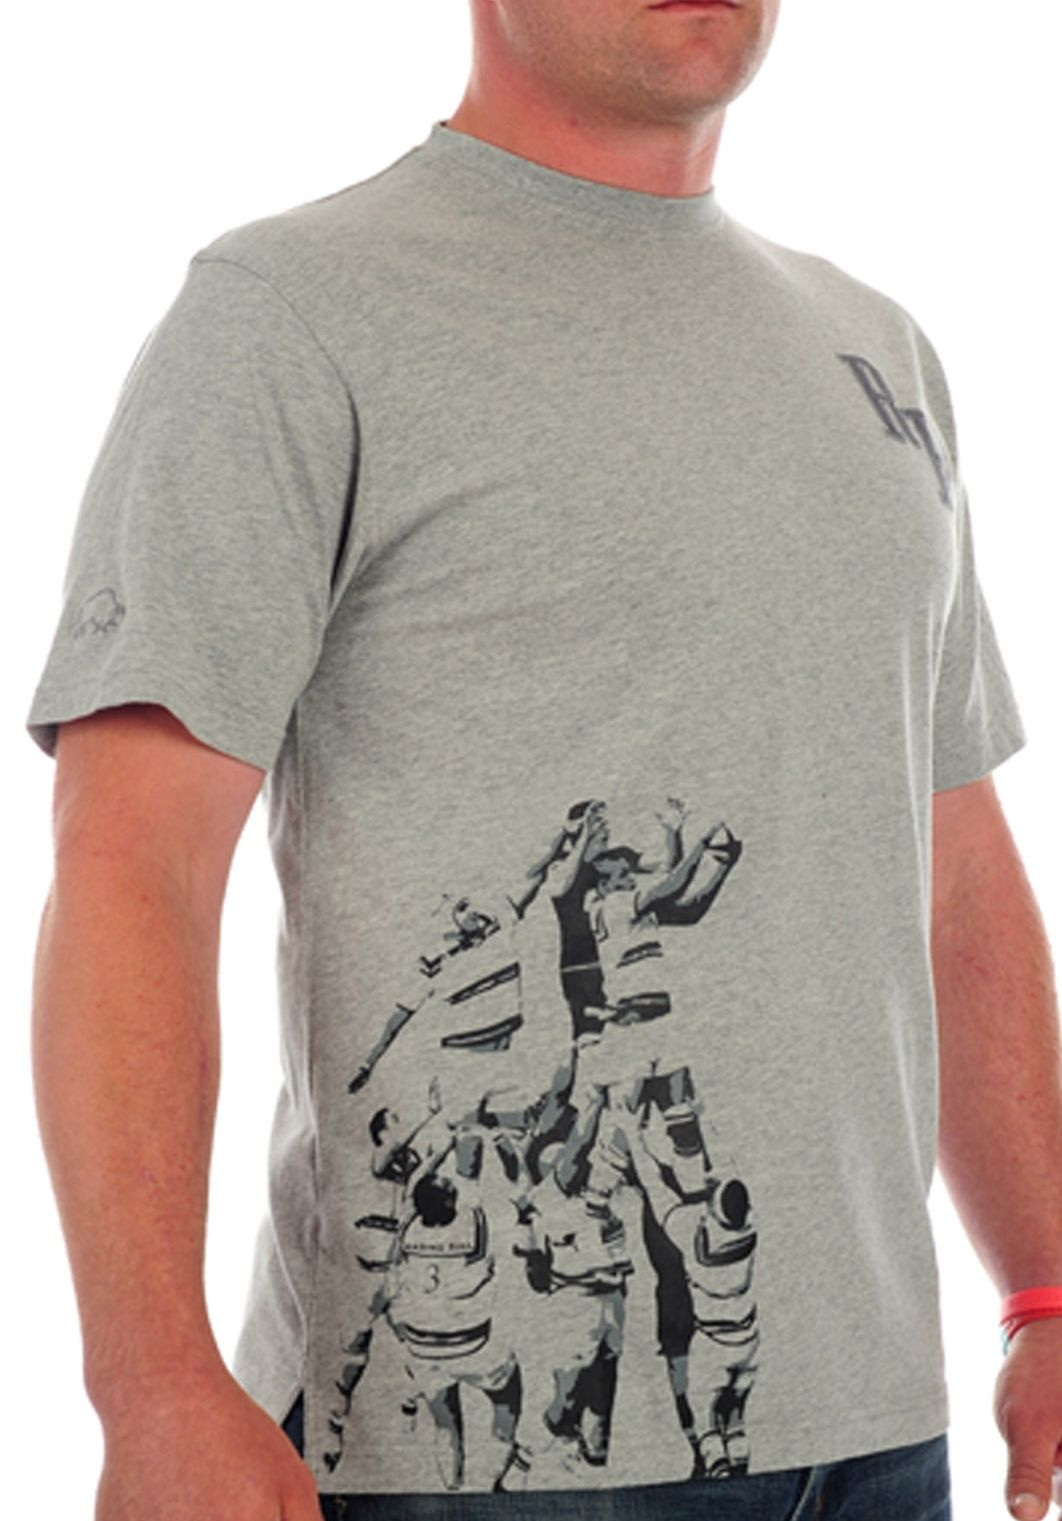 Raging Bull Line out T-shirt, Grey 155396847 product image